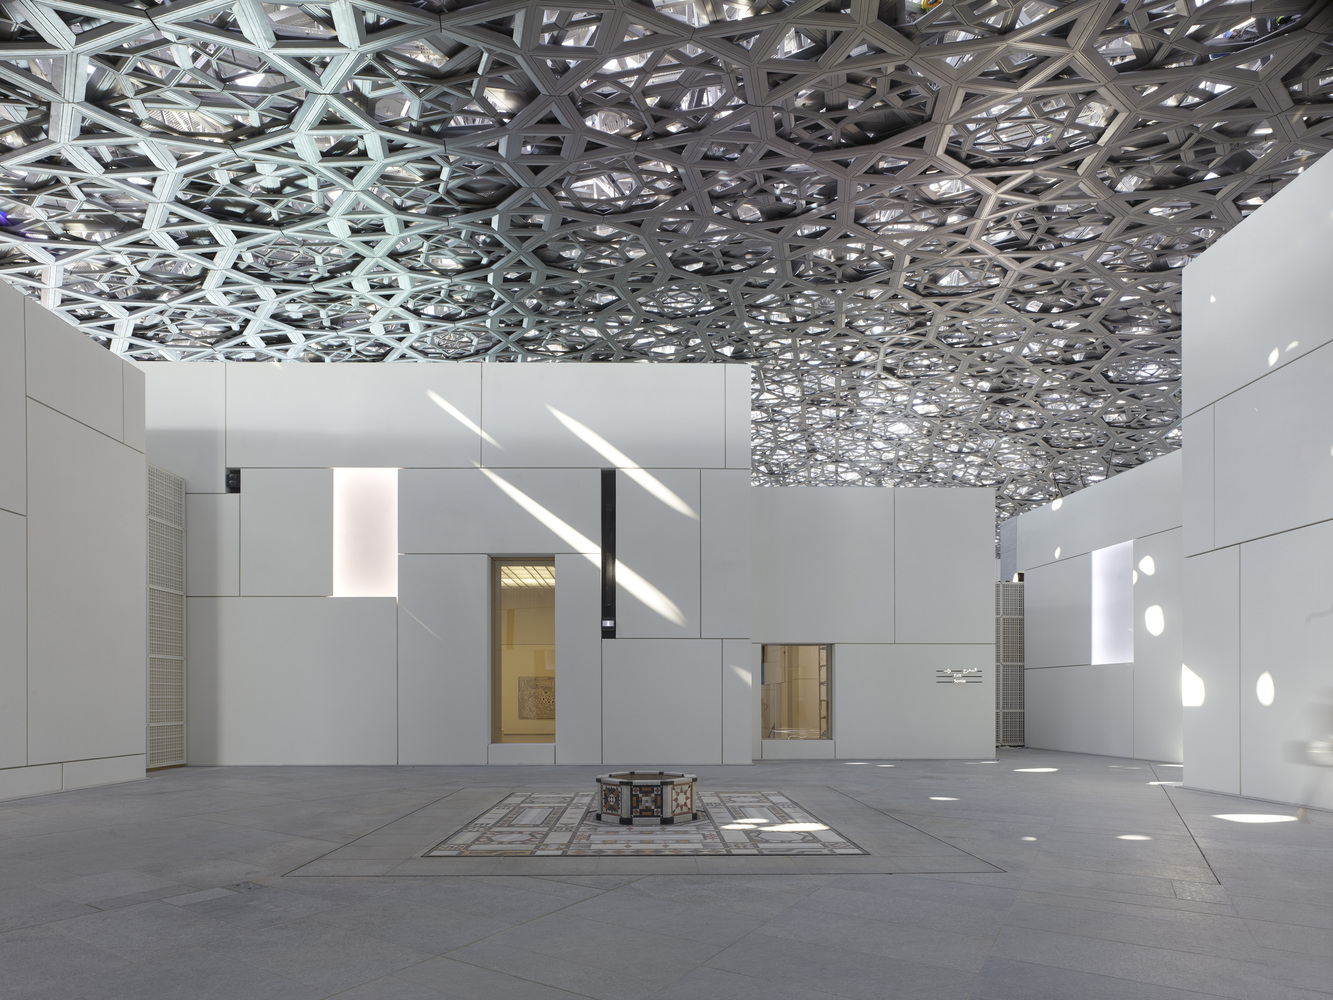 Louvre-Abu-Dhabi-Ateliers-Jean-Nouvel-Top-5-IGS-Magazine-Facade-3